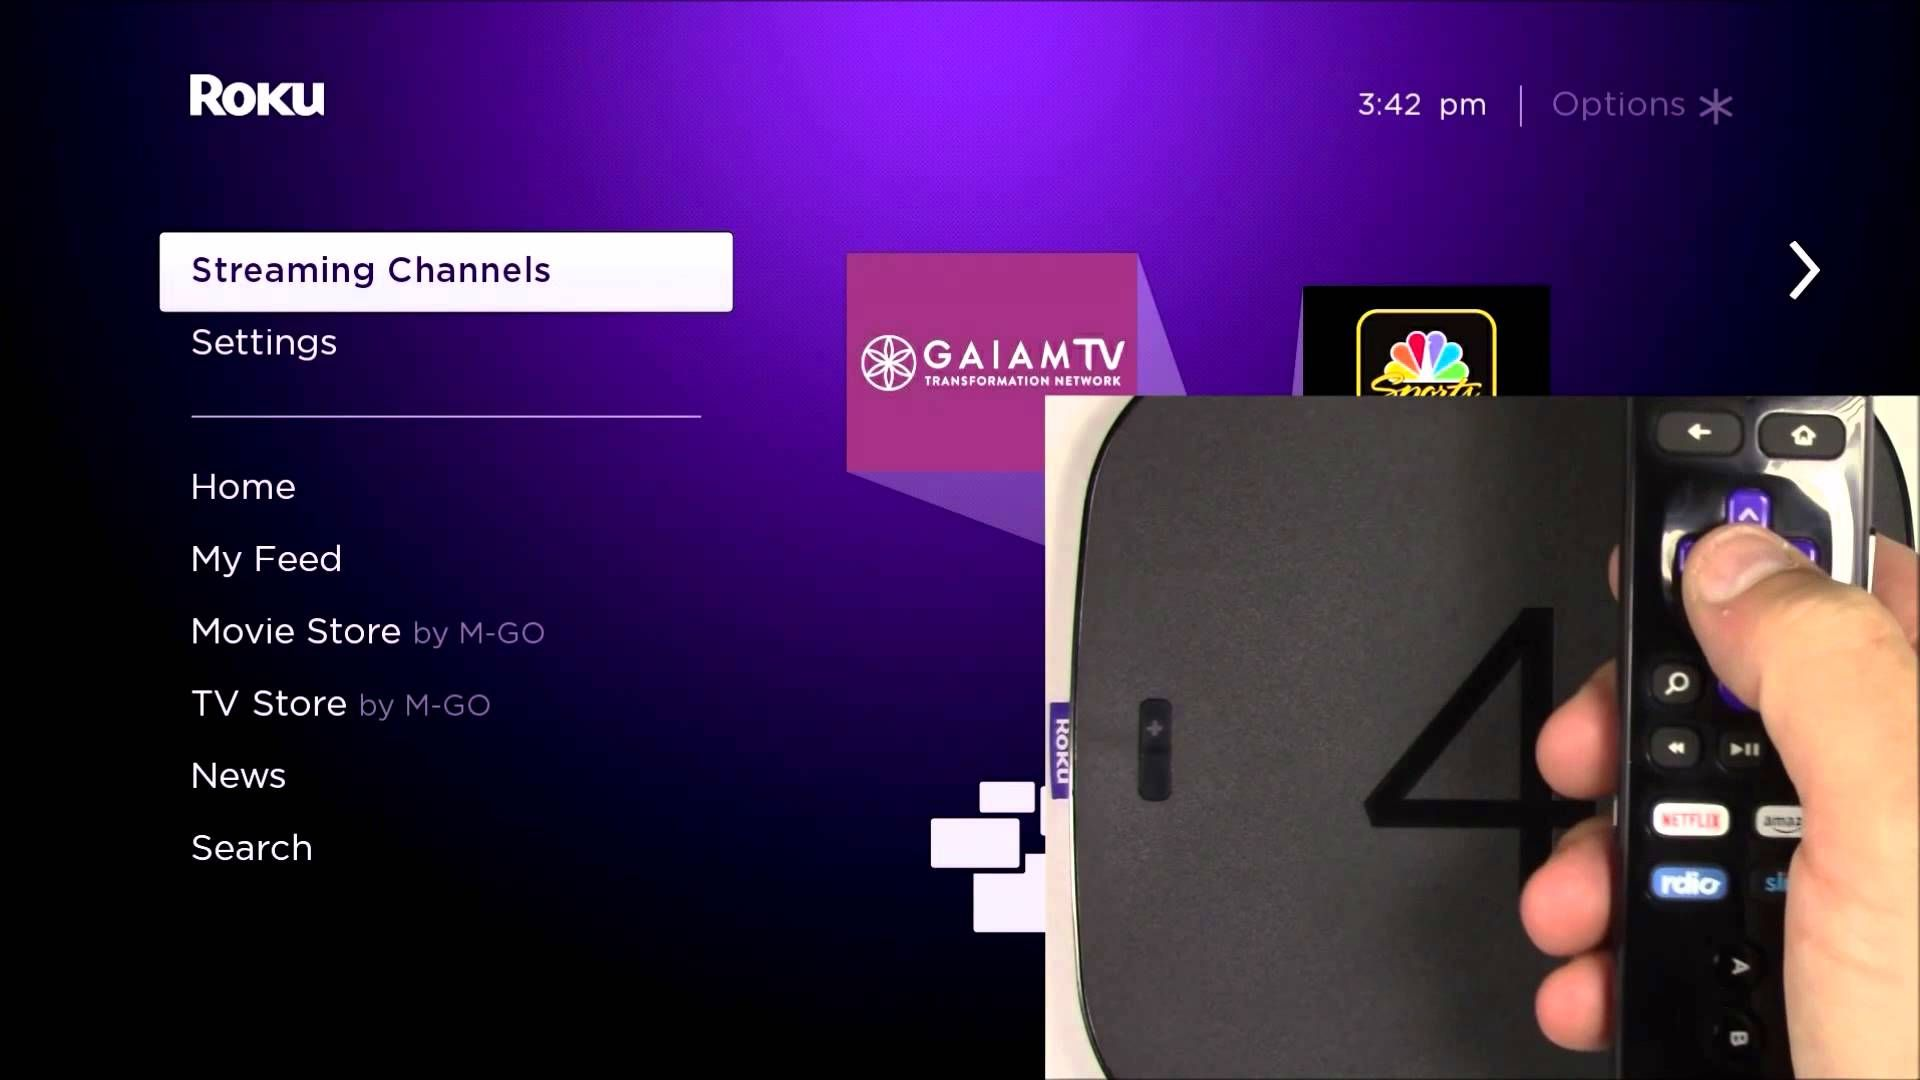 How To Fix A Roku 4 If It Won't Start After 'Auto Power